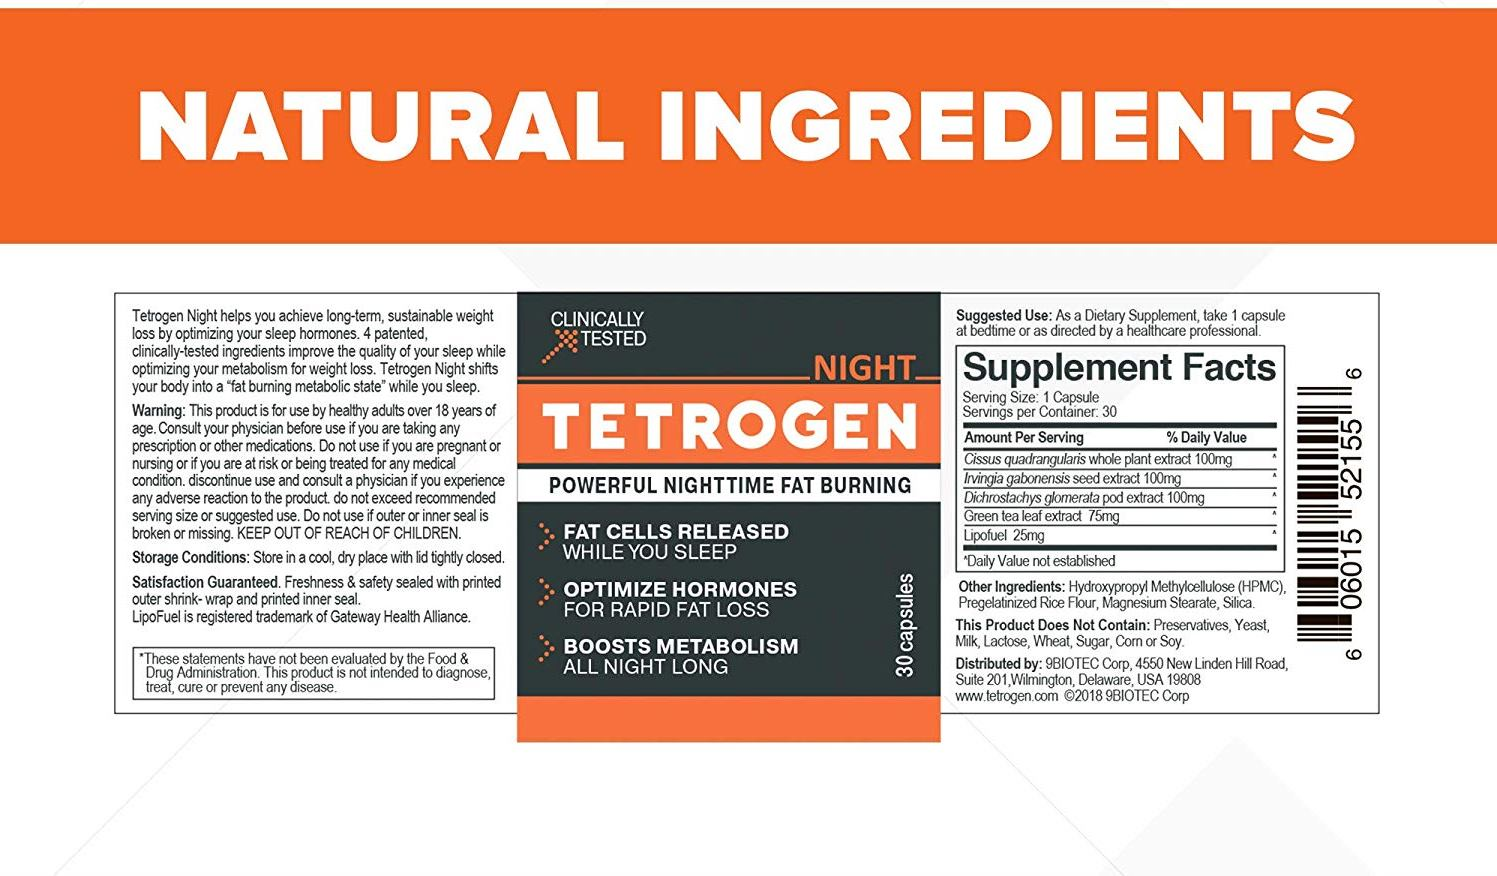 Testrogen Ingredients